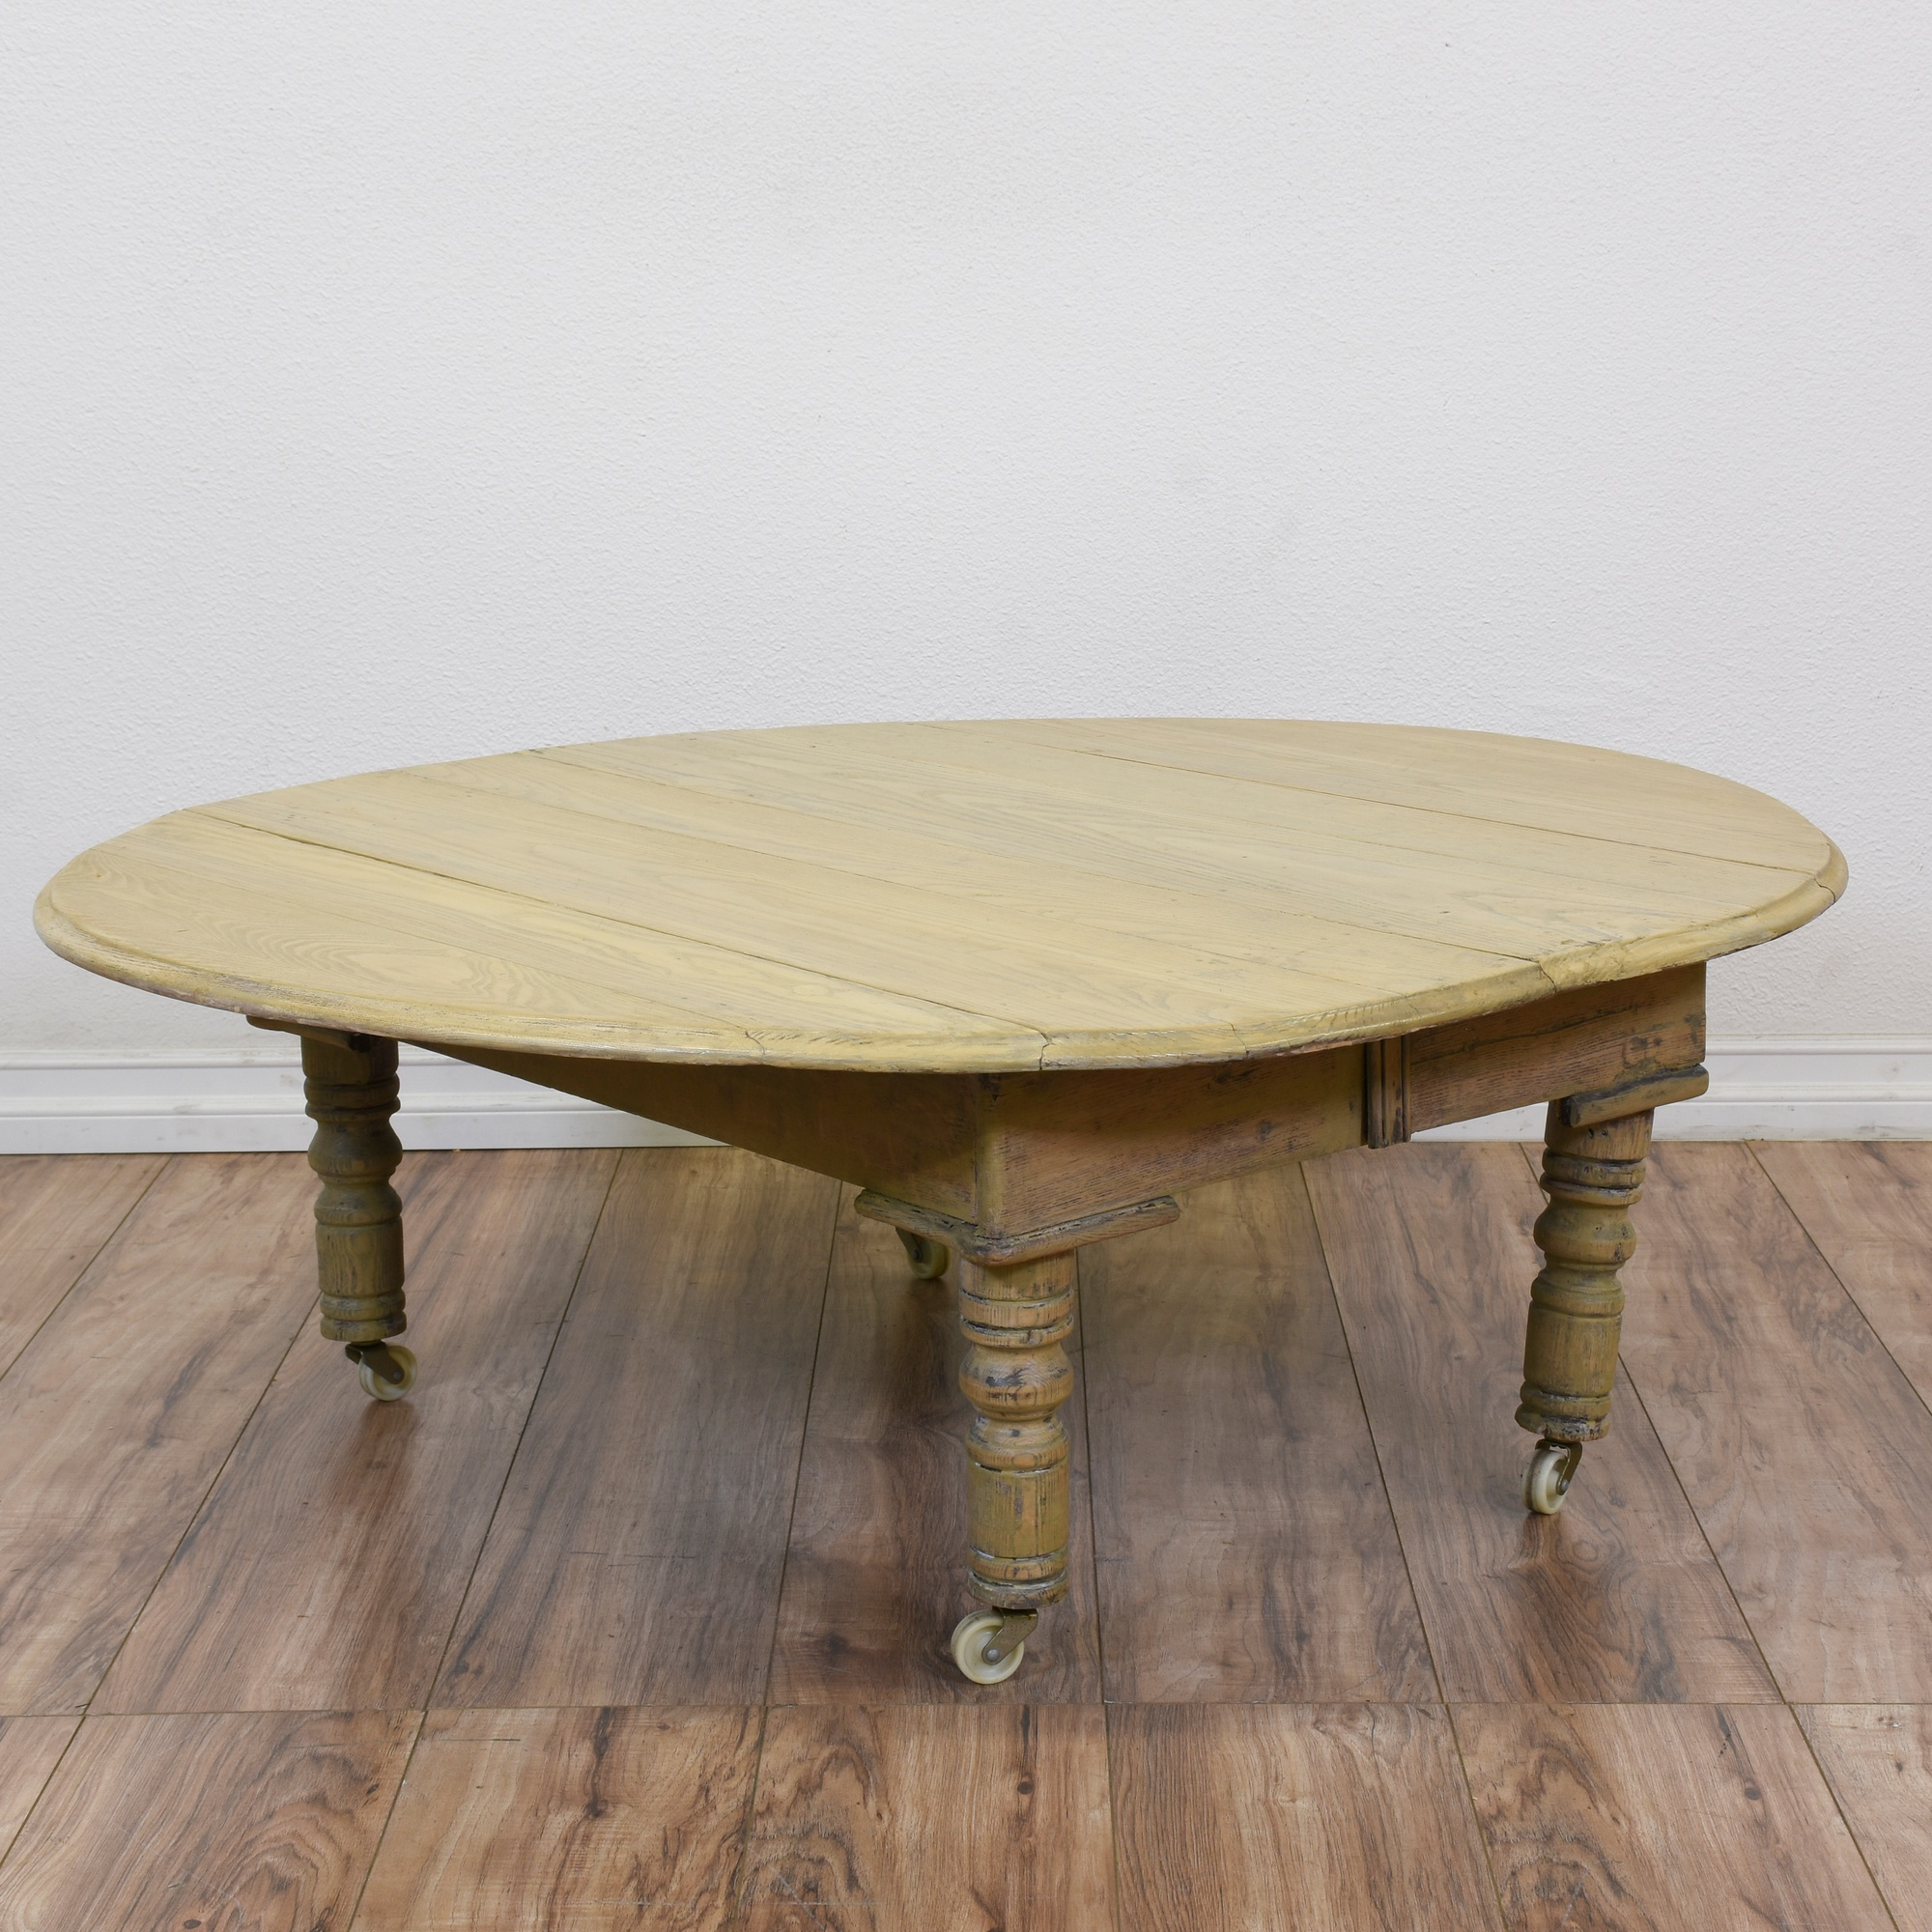 Shabby Chic Corner Coffee Table: Shabby Chic Drop Leaf Coffee Table On Castors